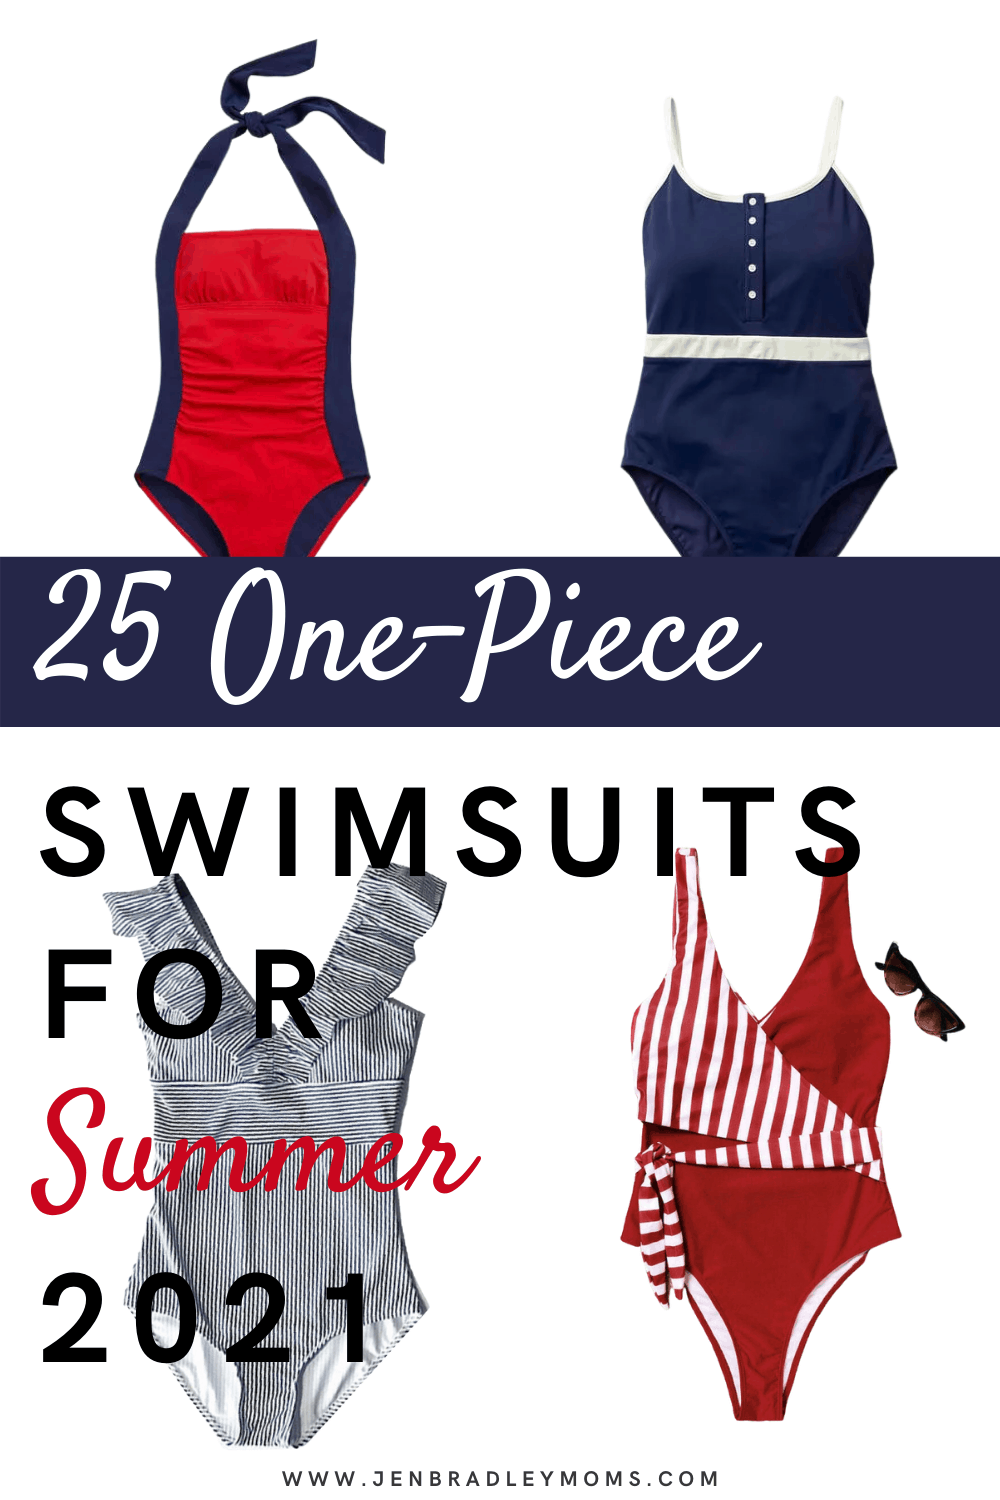 25 Cute One-Piece Modest Swimsuits for Moms in 2021